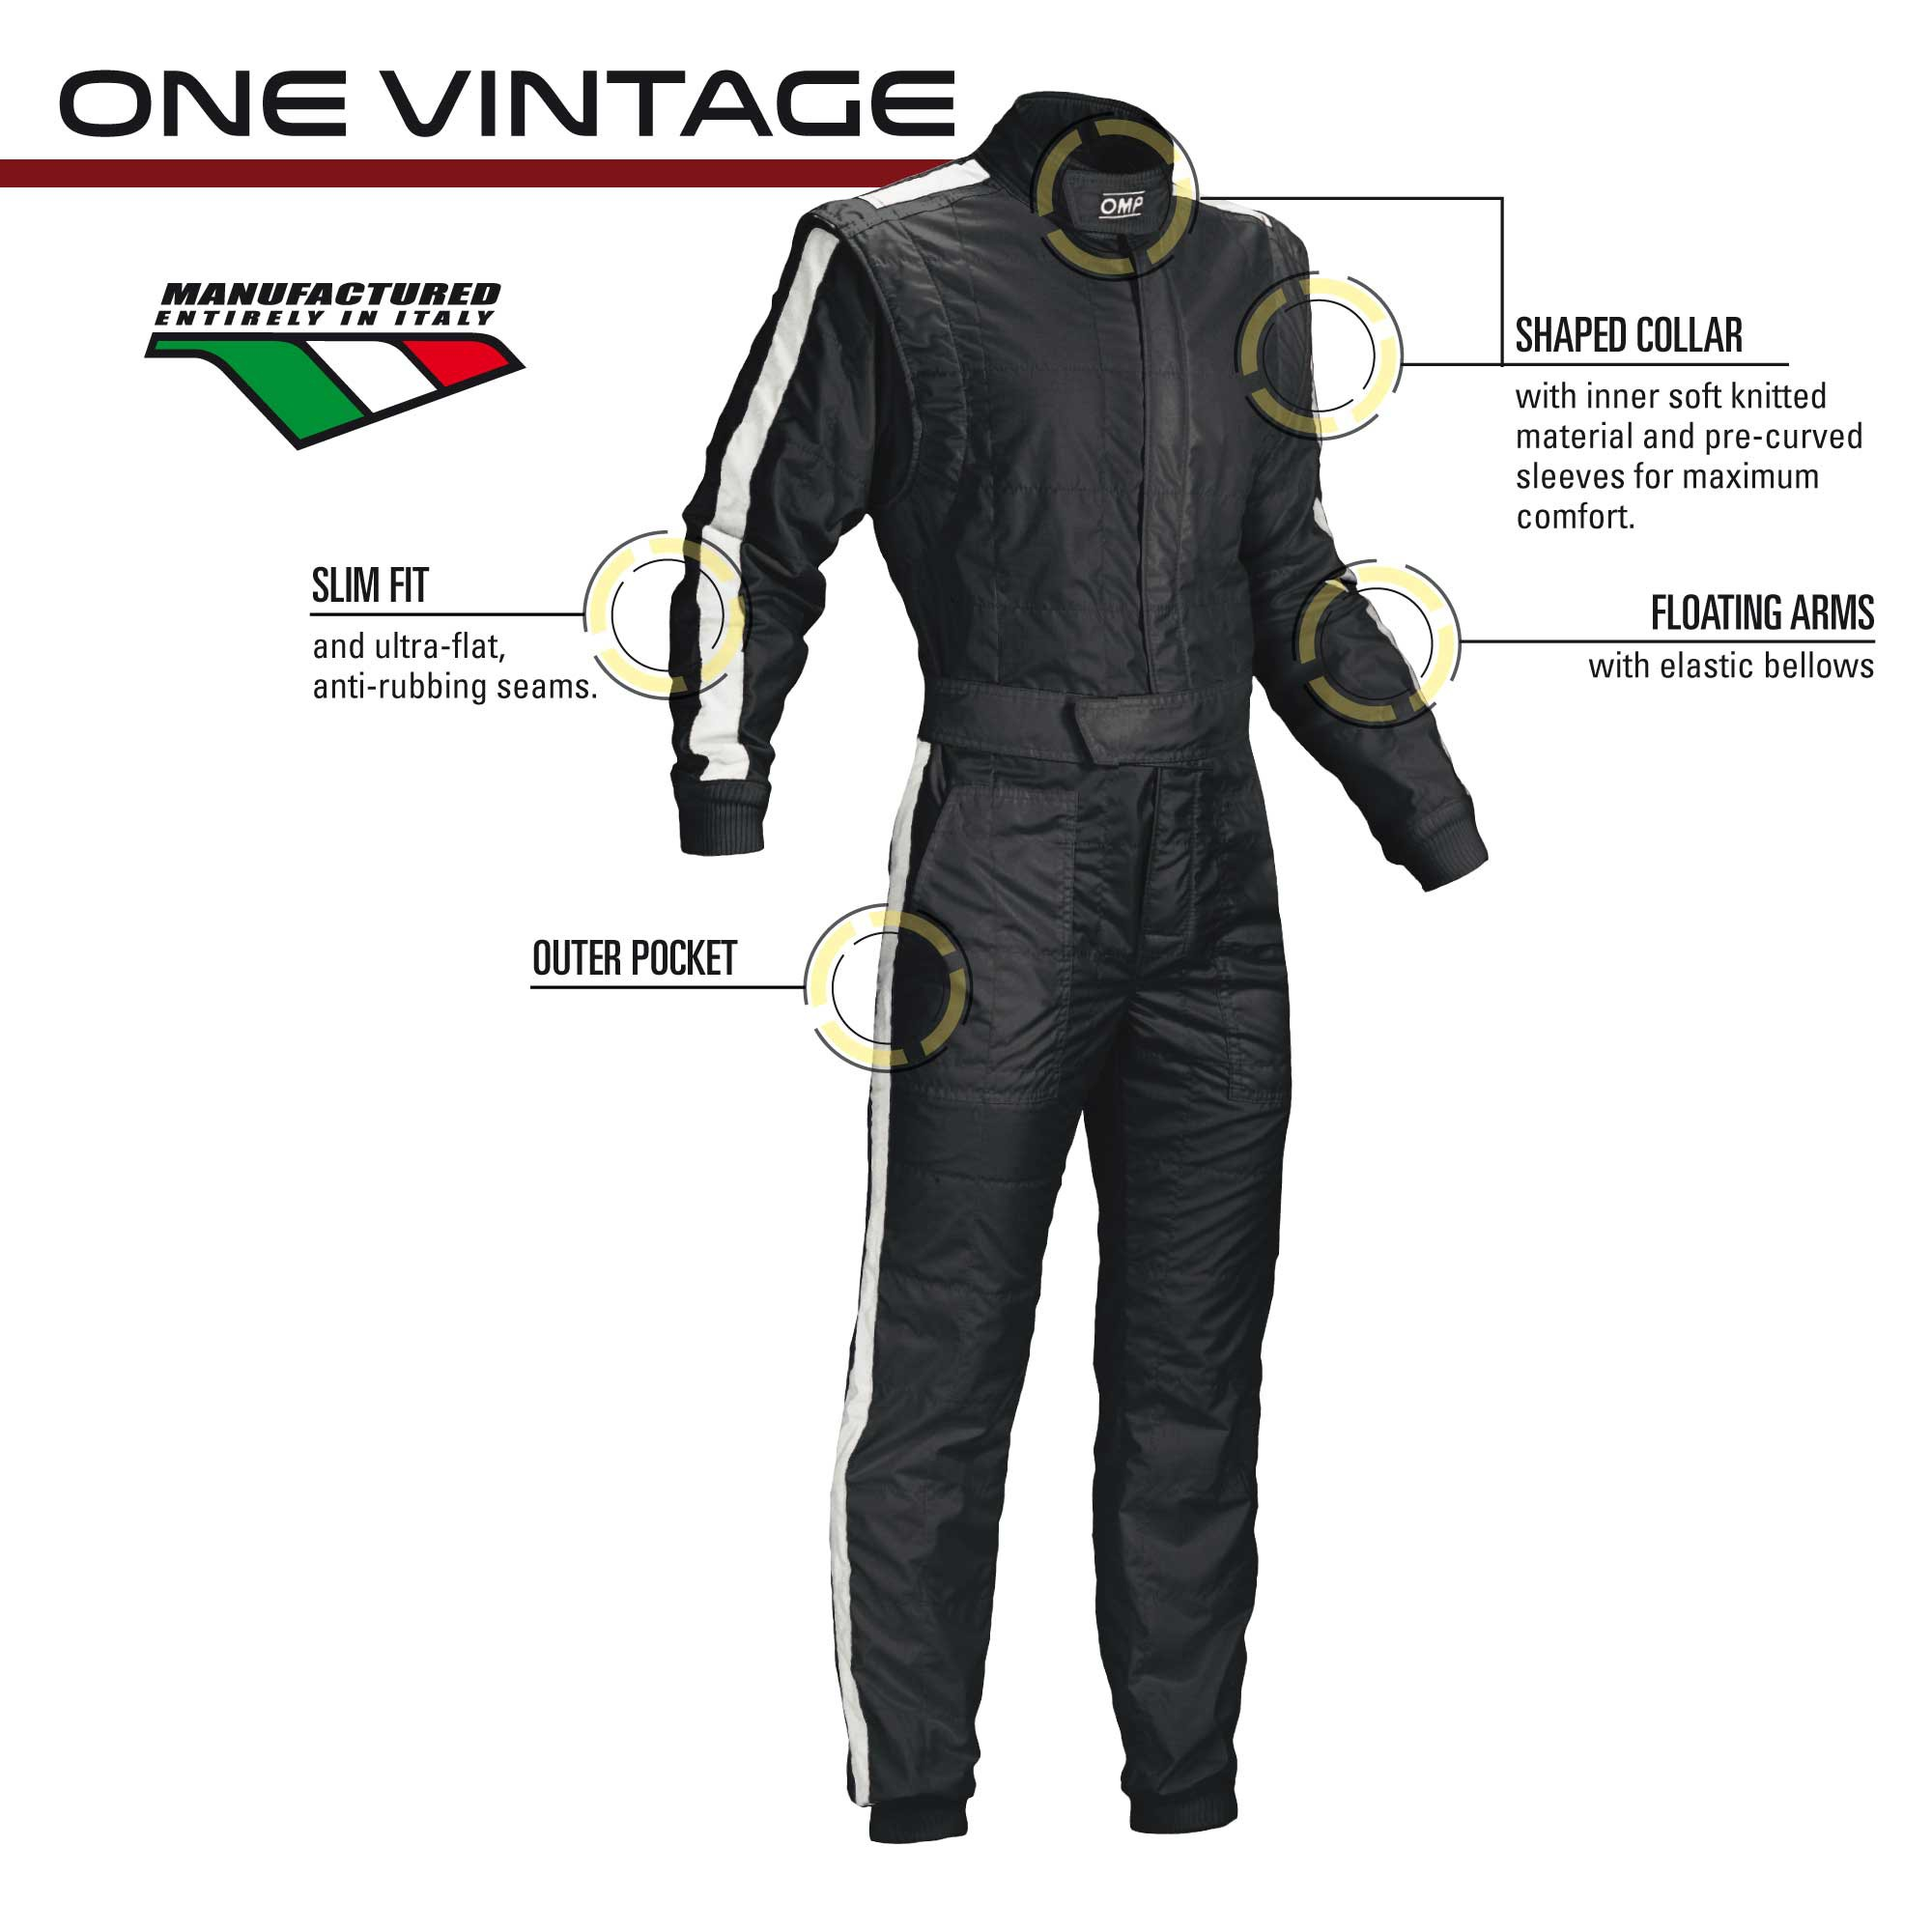 Vintage racing suits 60's style - VINTAGE ONE SUIT